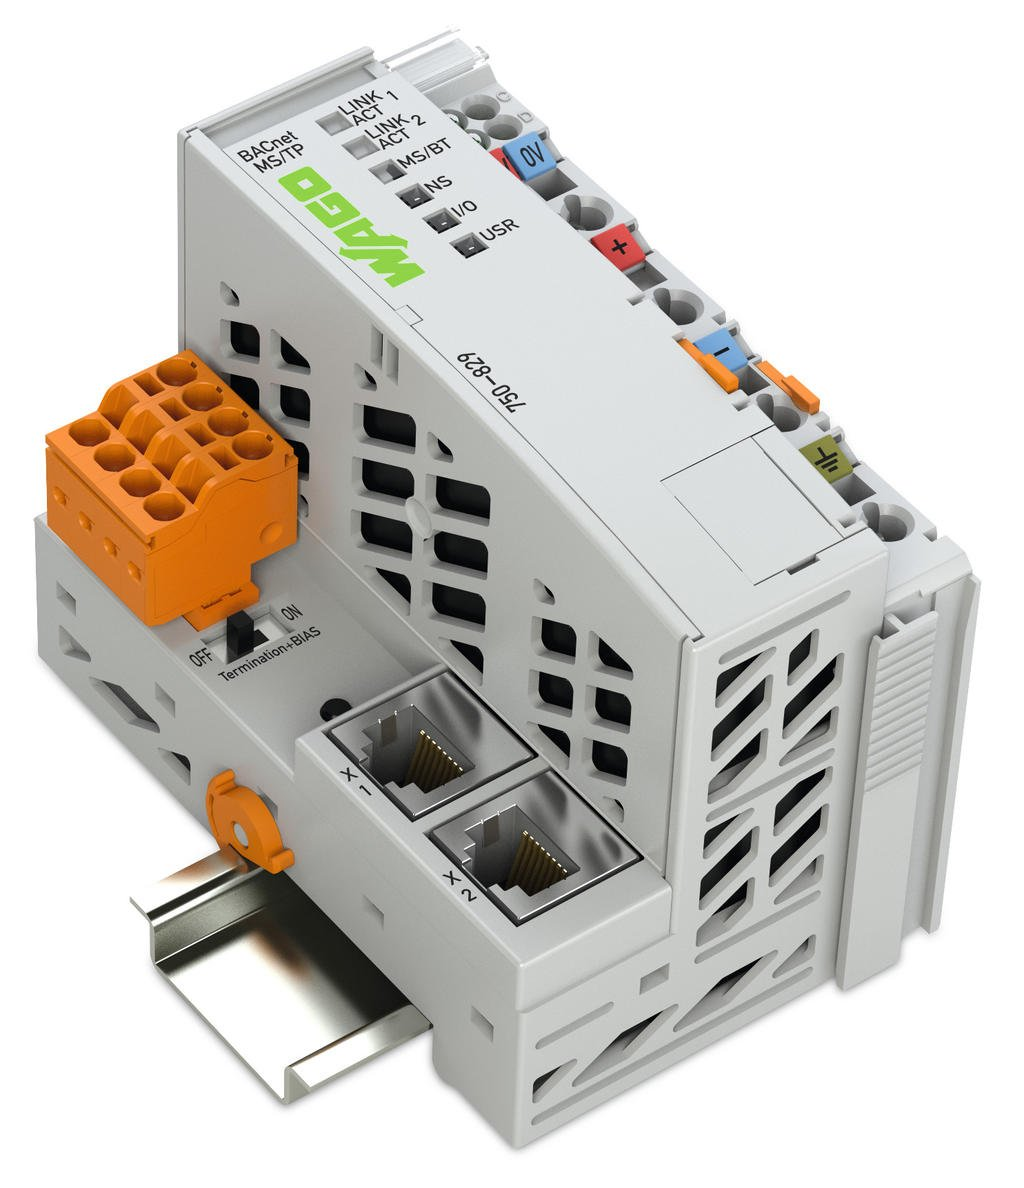 Wago Controller Bacnet Ms Tp 750 829 Wiring